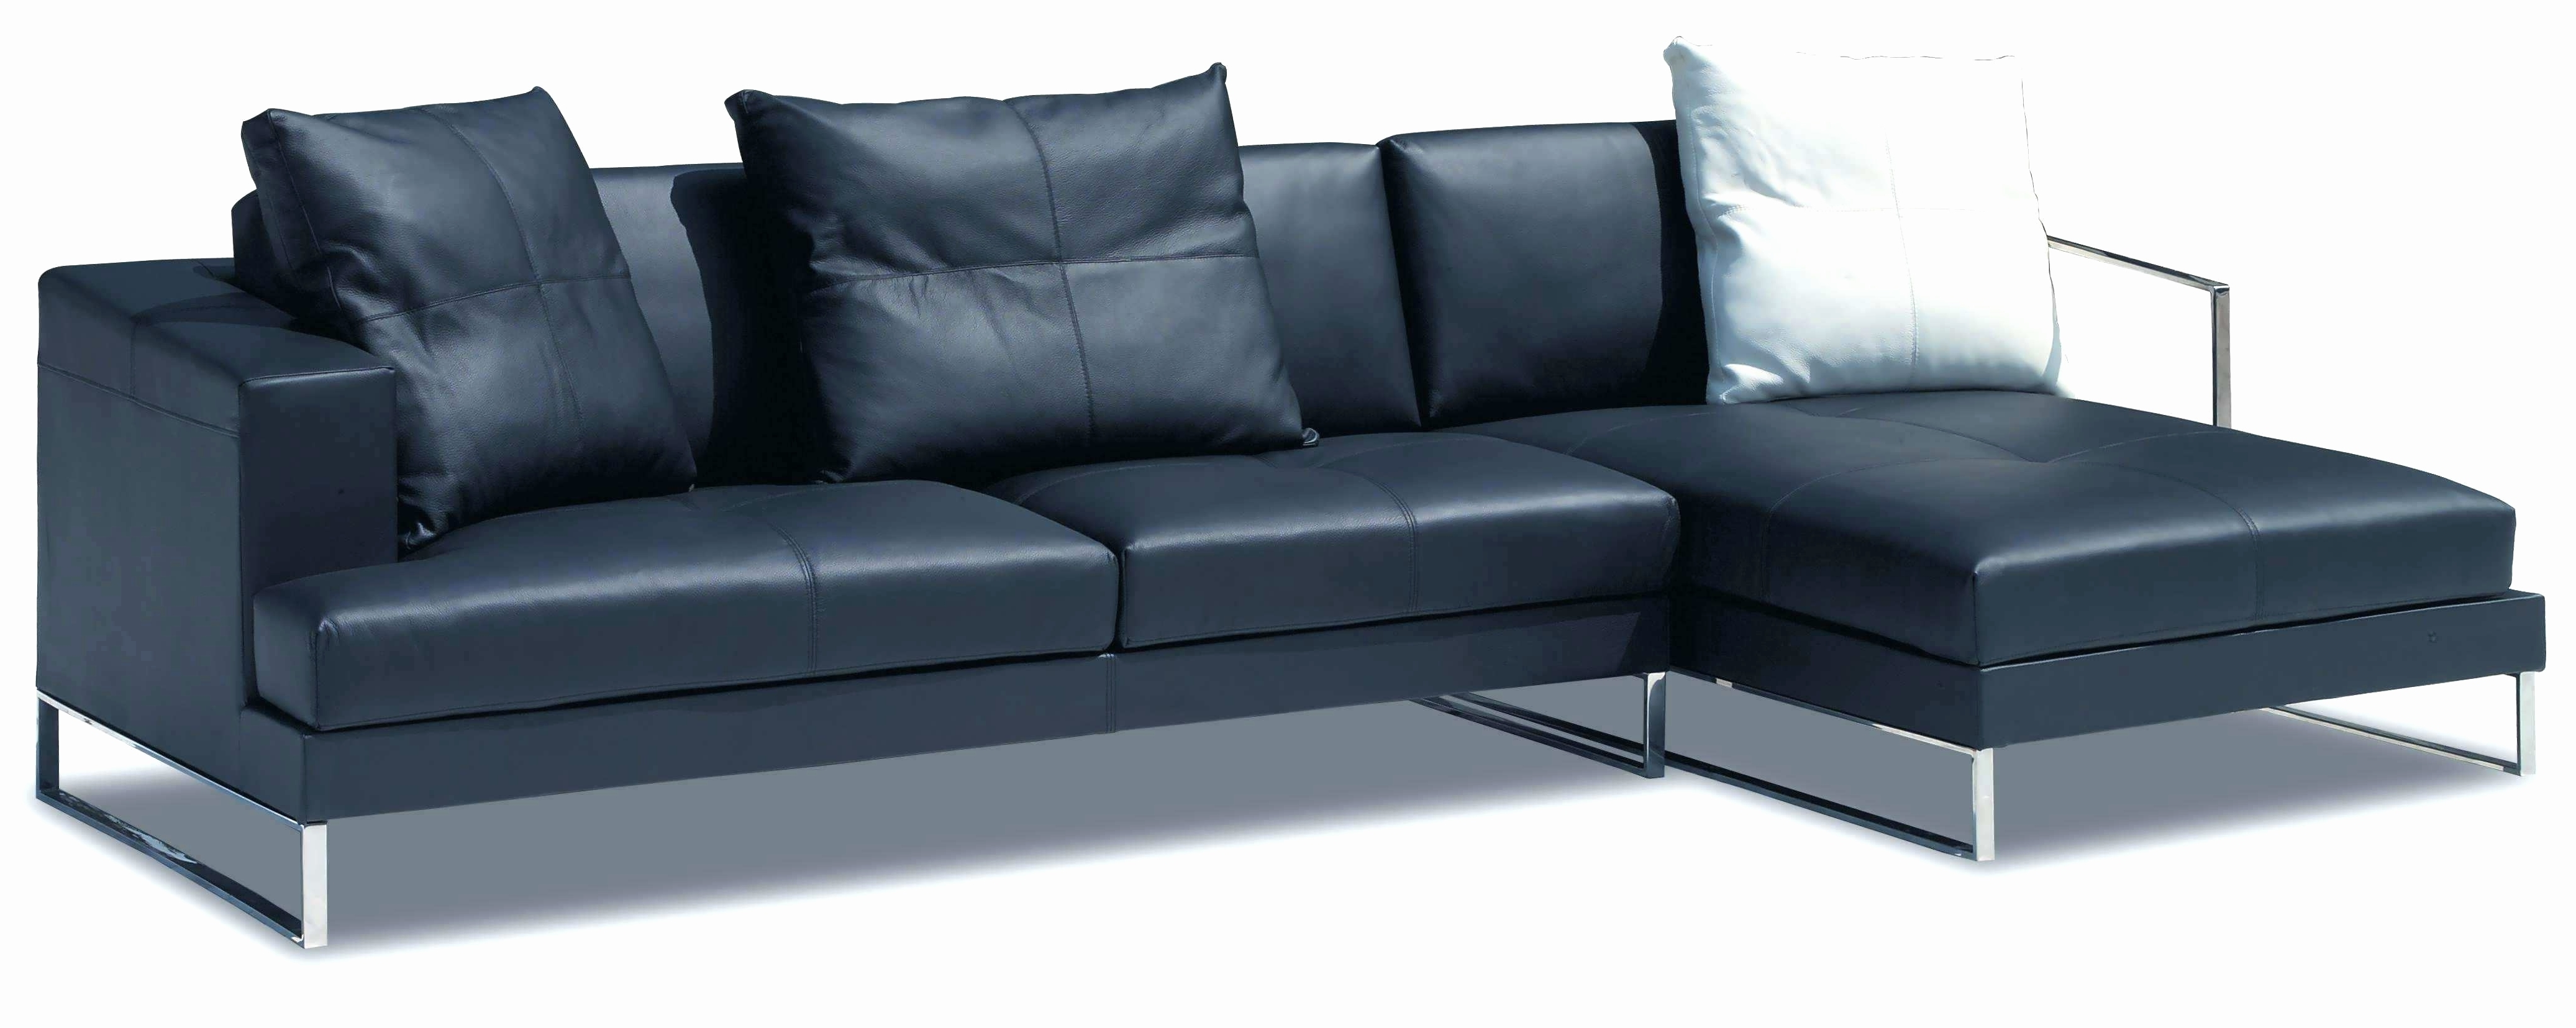 Sectional Sofas With Double Chaise Inside Newest Unique Gray Sectional Sofa With Chaise 2018 – Couches Ideas (View 7 of 15)